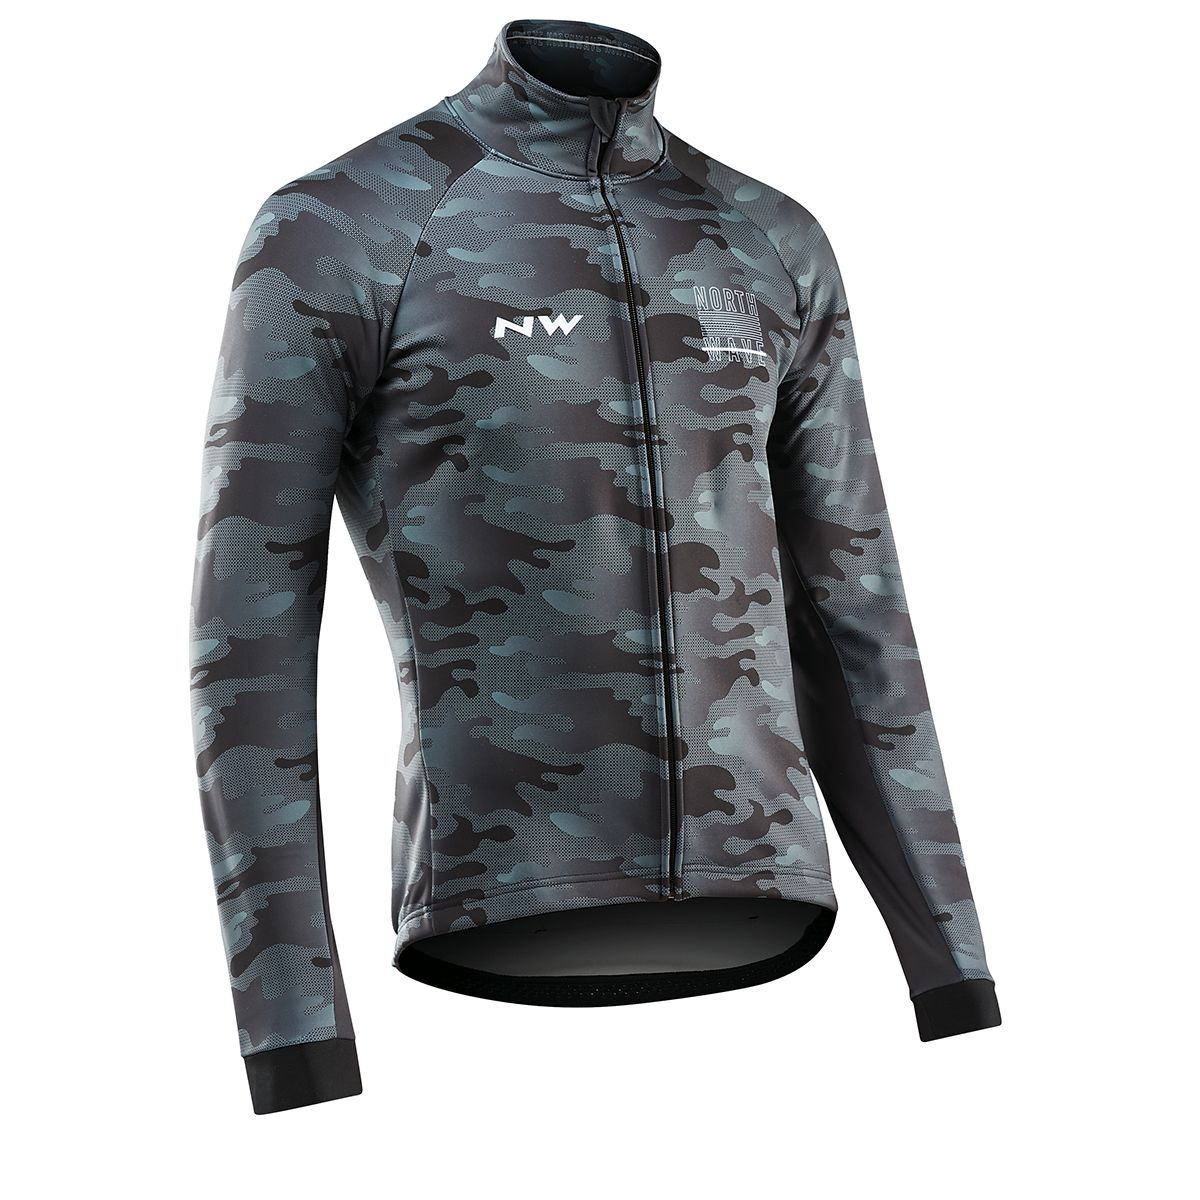 BLADE 3 JACKET TOTAL PROTECTION Thermo Fahrradjacke